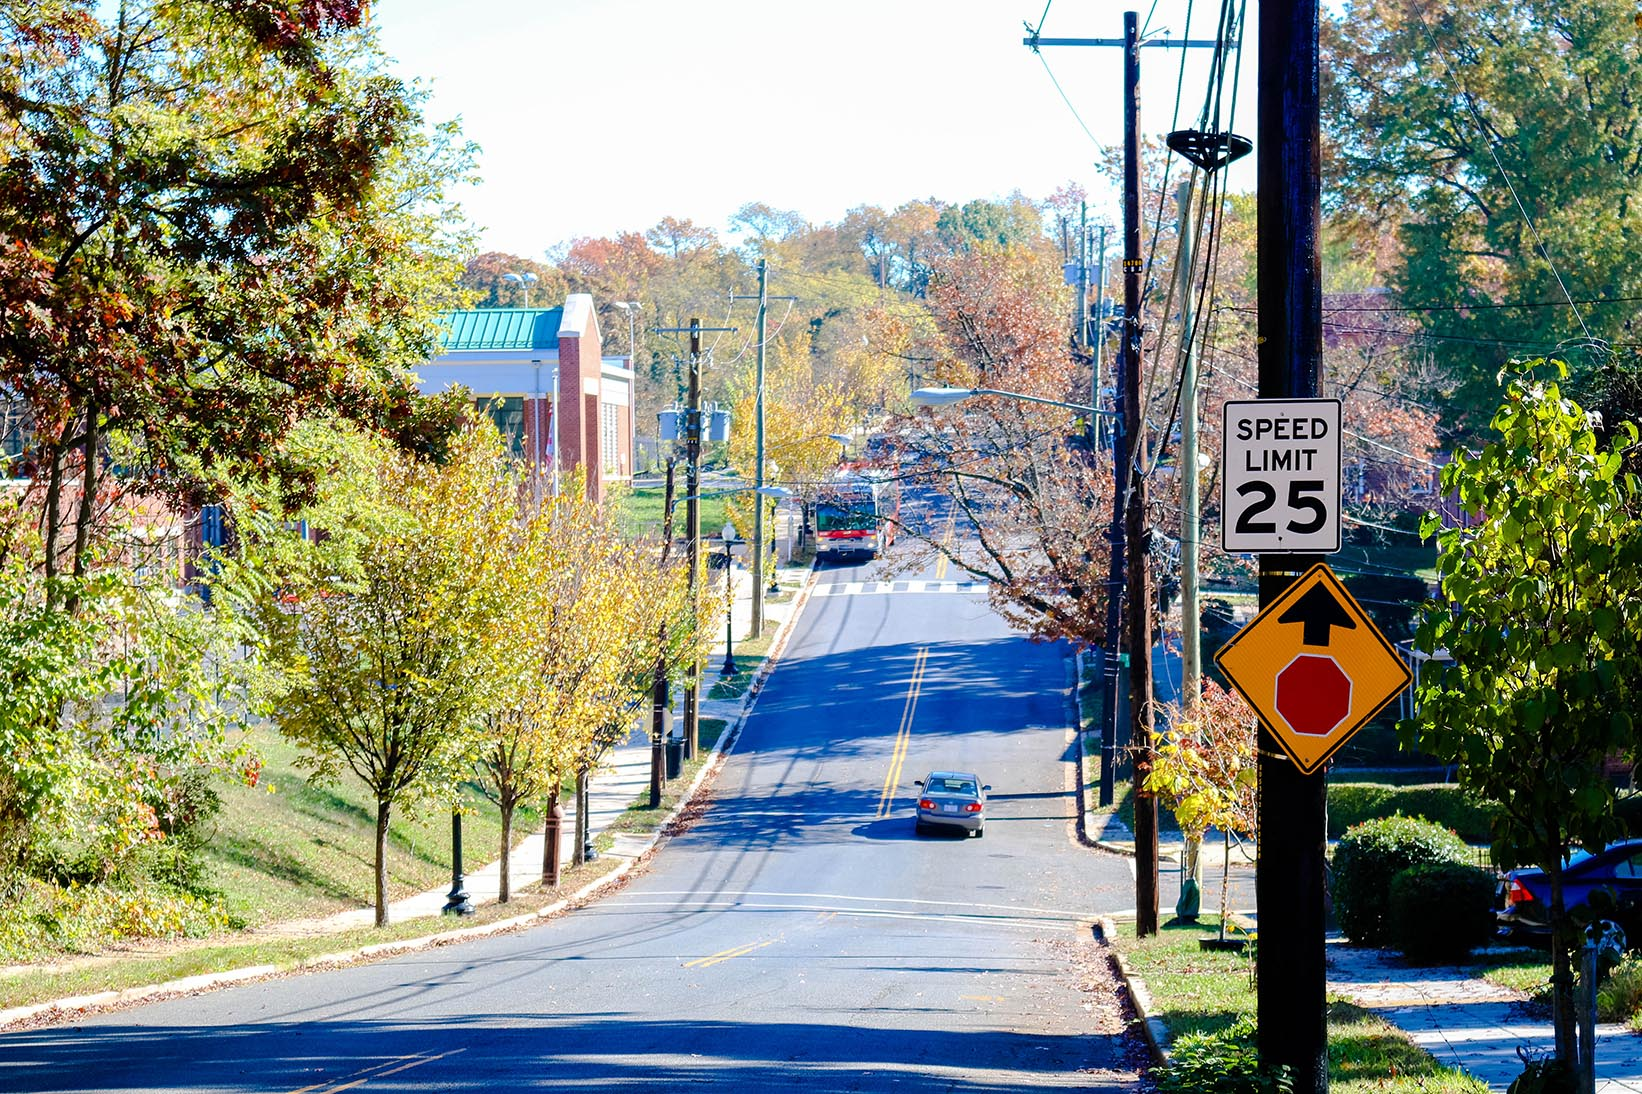 Street in Anacostia, Washington, DC